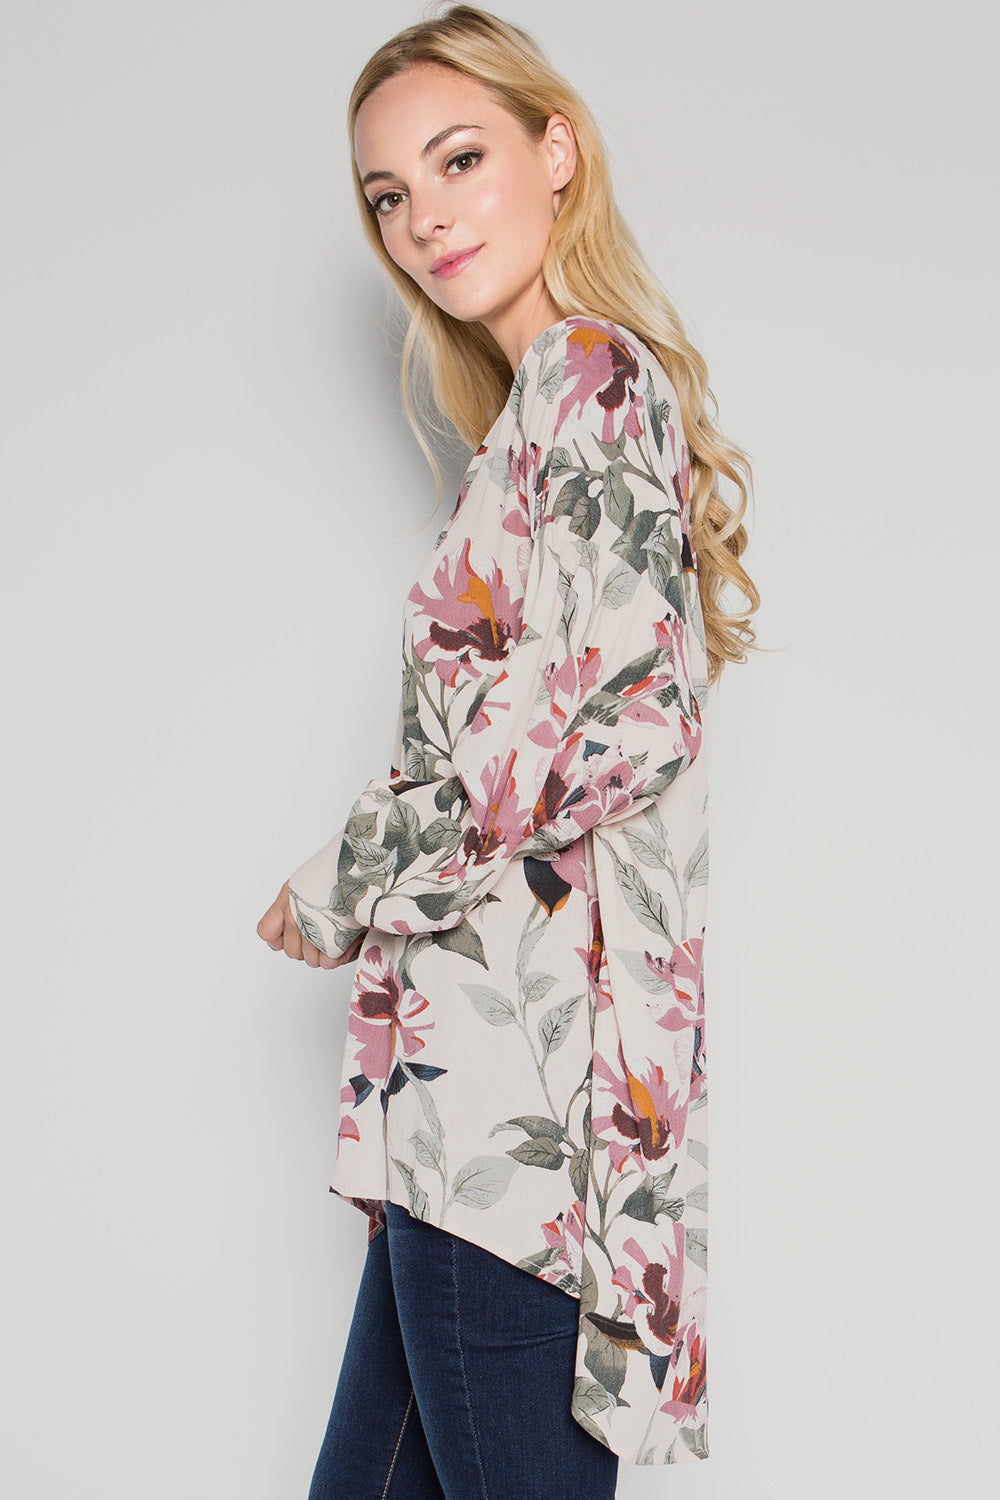 T2207 Floral Shirts